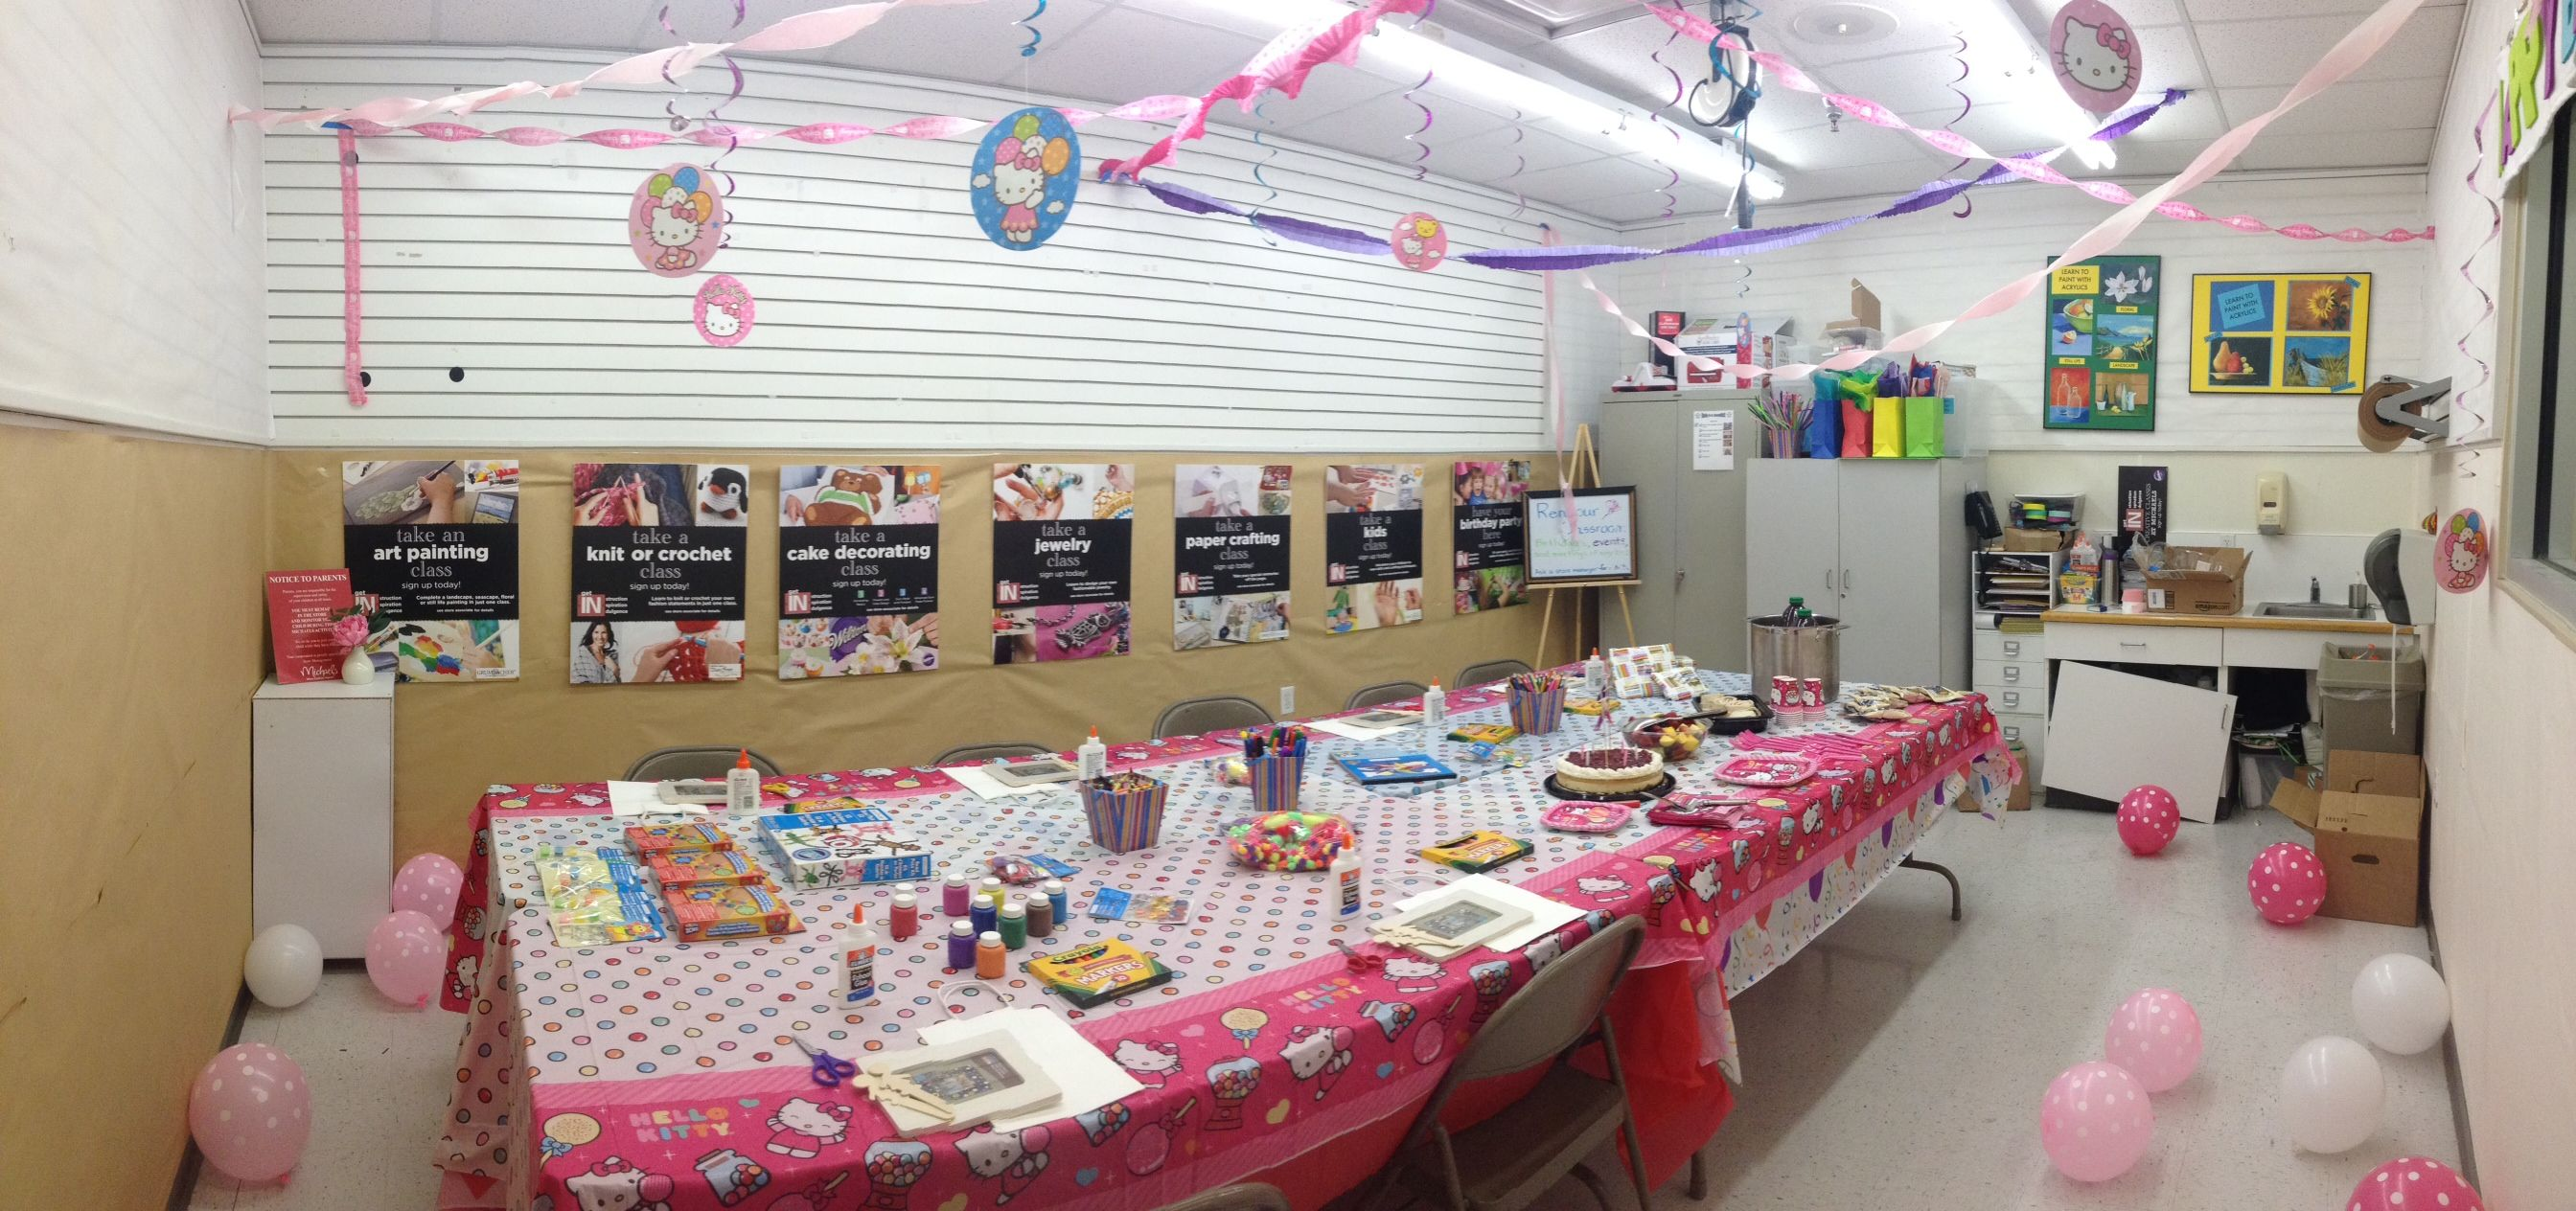 Hello Kitty Themed Arts Crafts Birthday Party At Michael S Craft